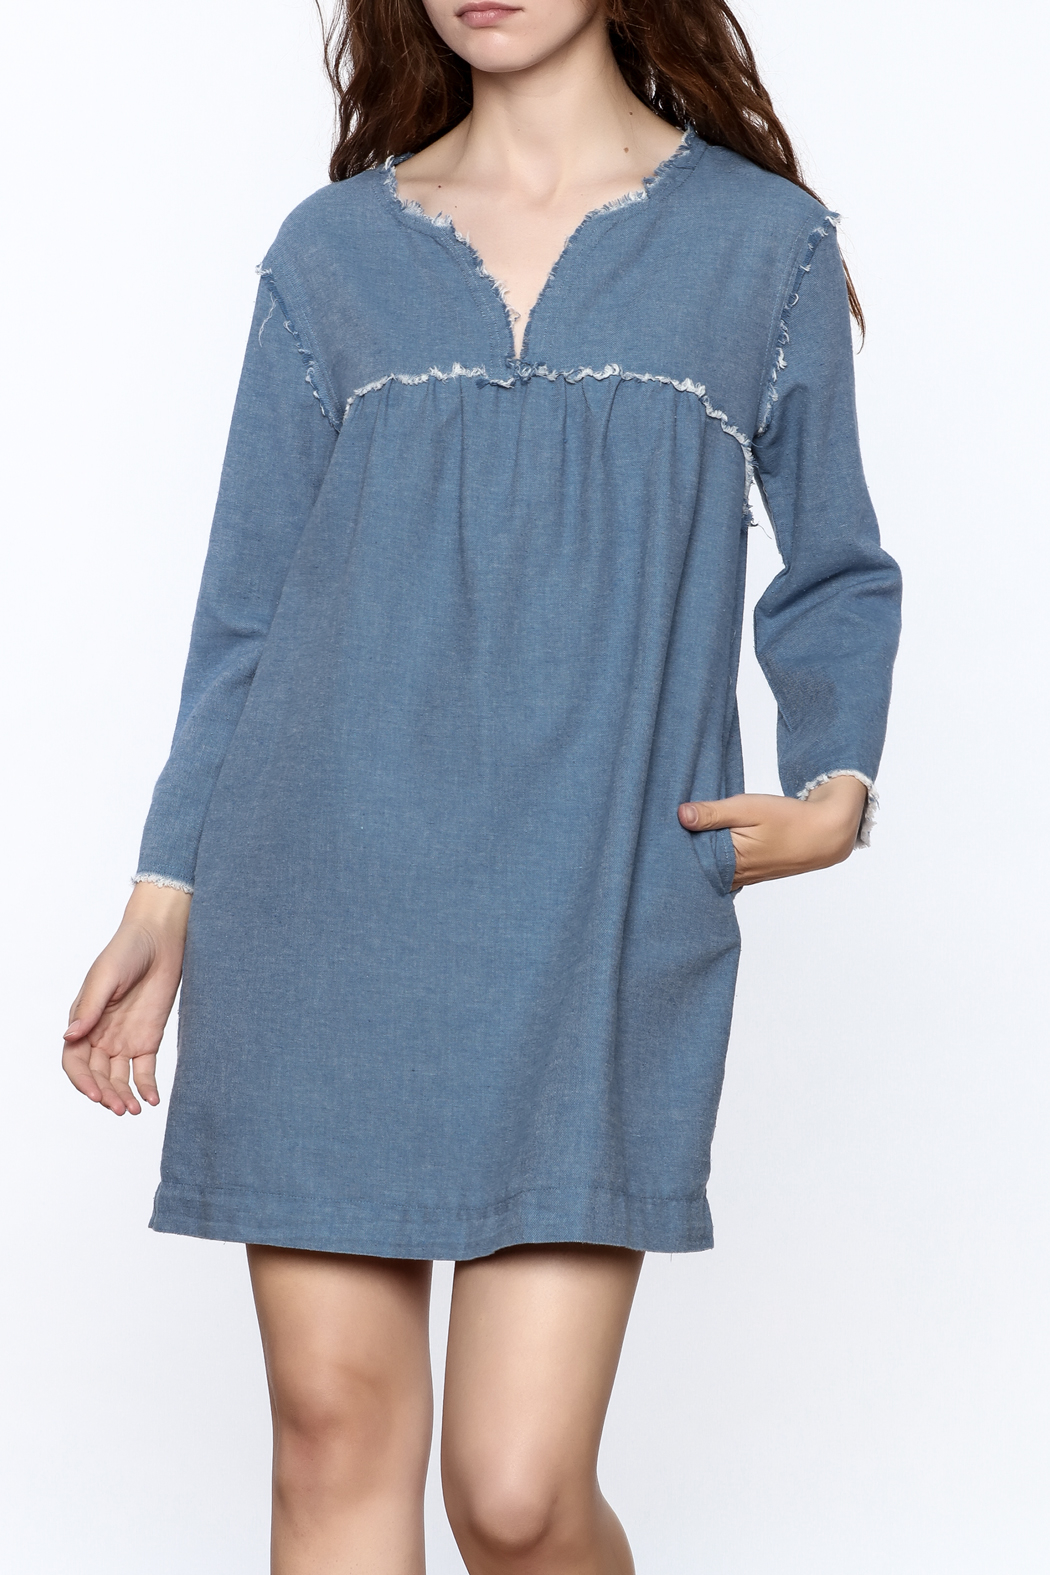 Ellison Frayed Denim Dress - Front Cropped Image